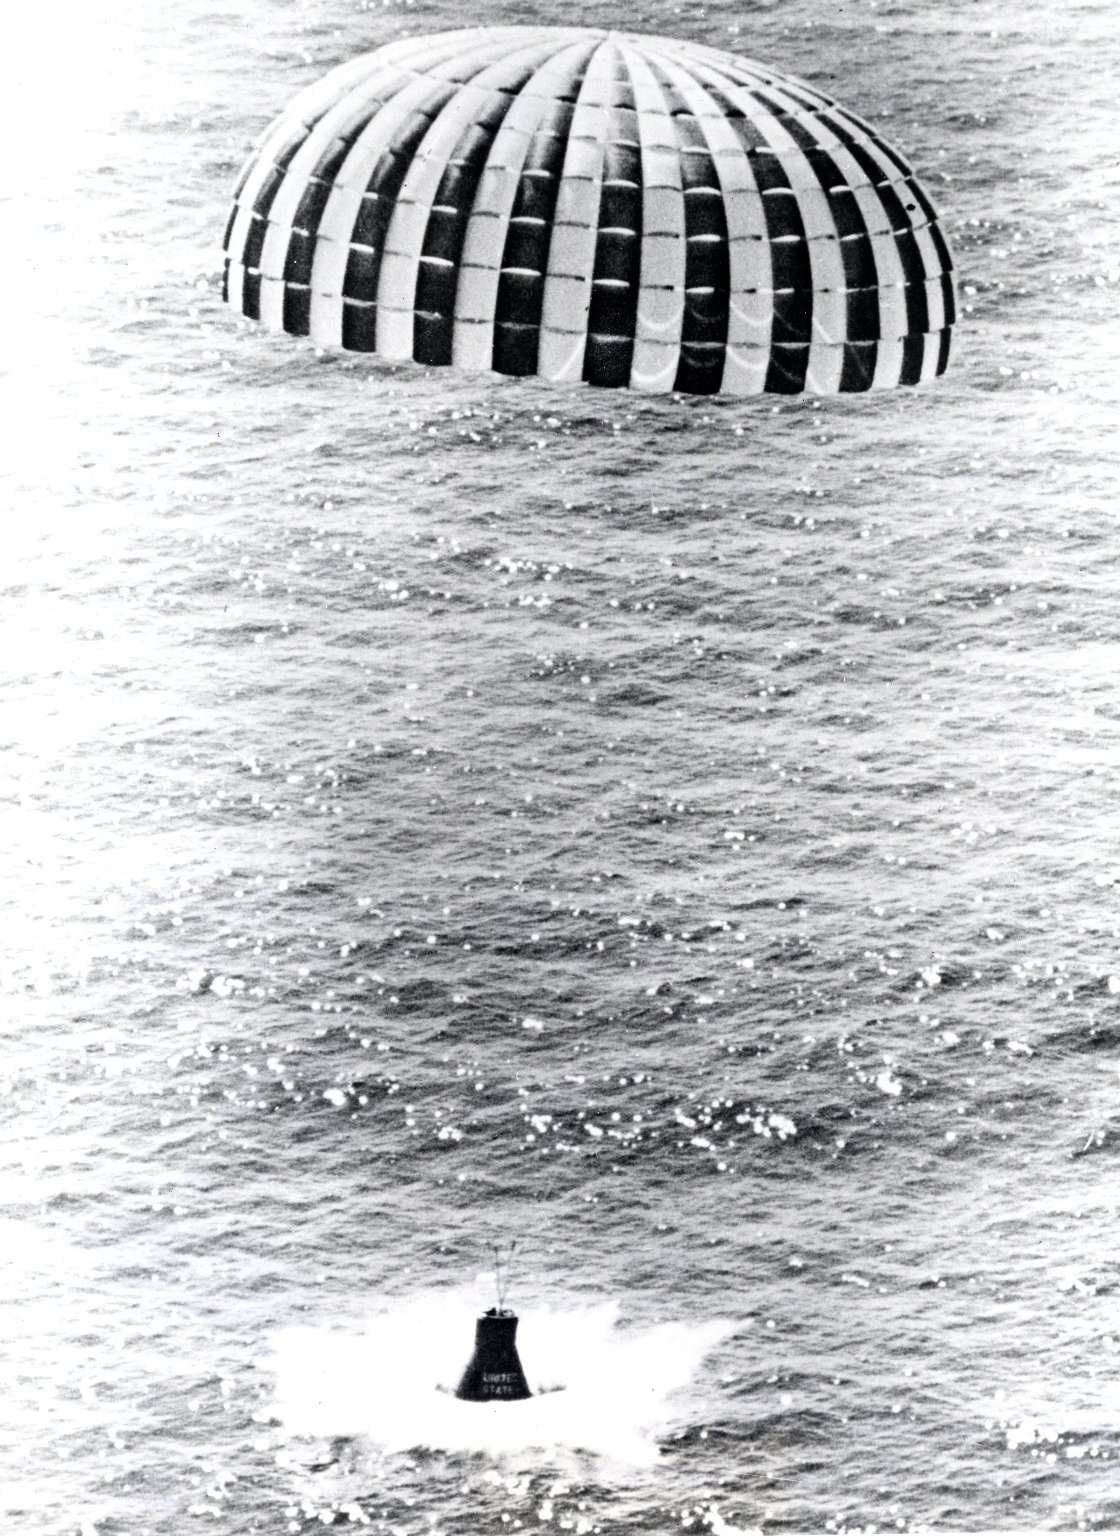 Little Joe 5B launched a Mercury spacecraft in a high-Q-abort test.